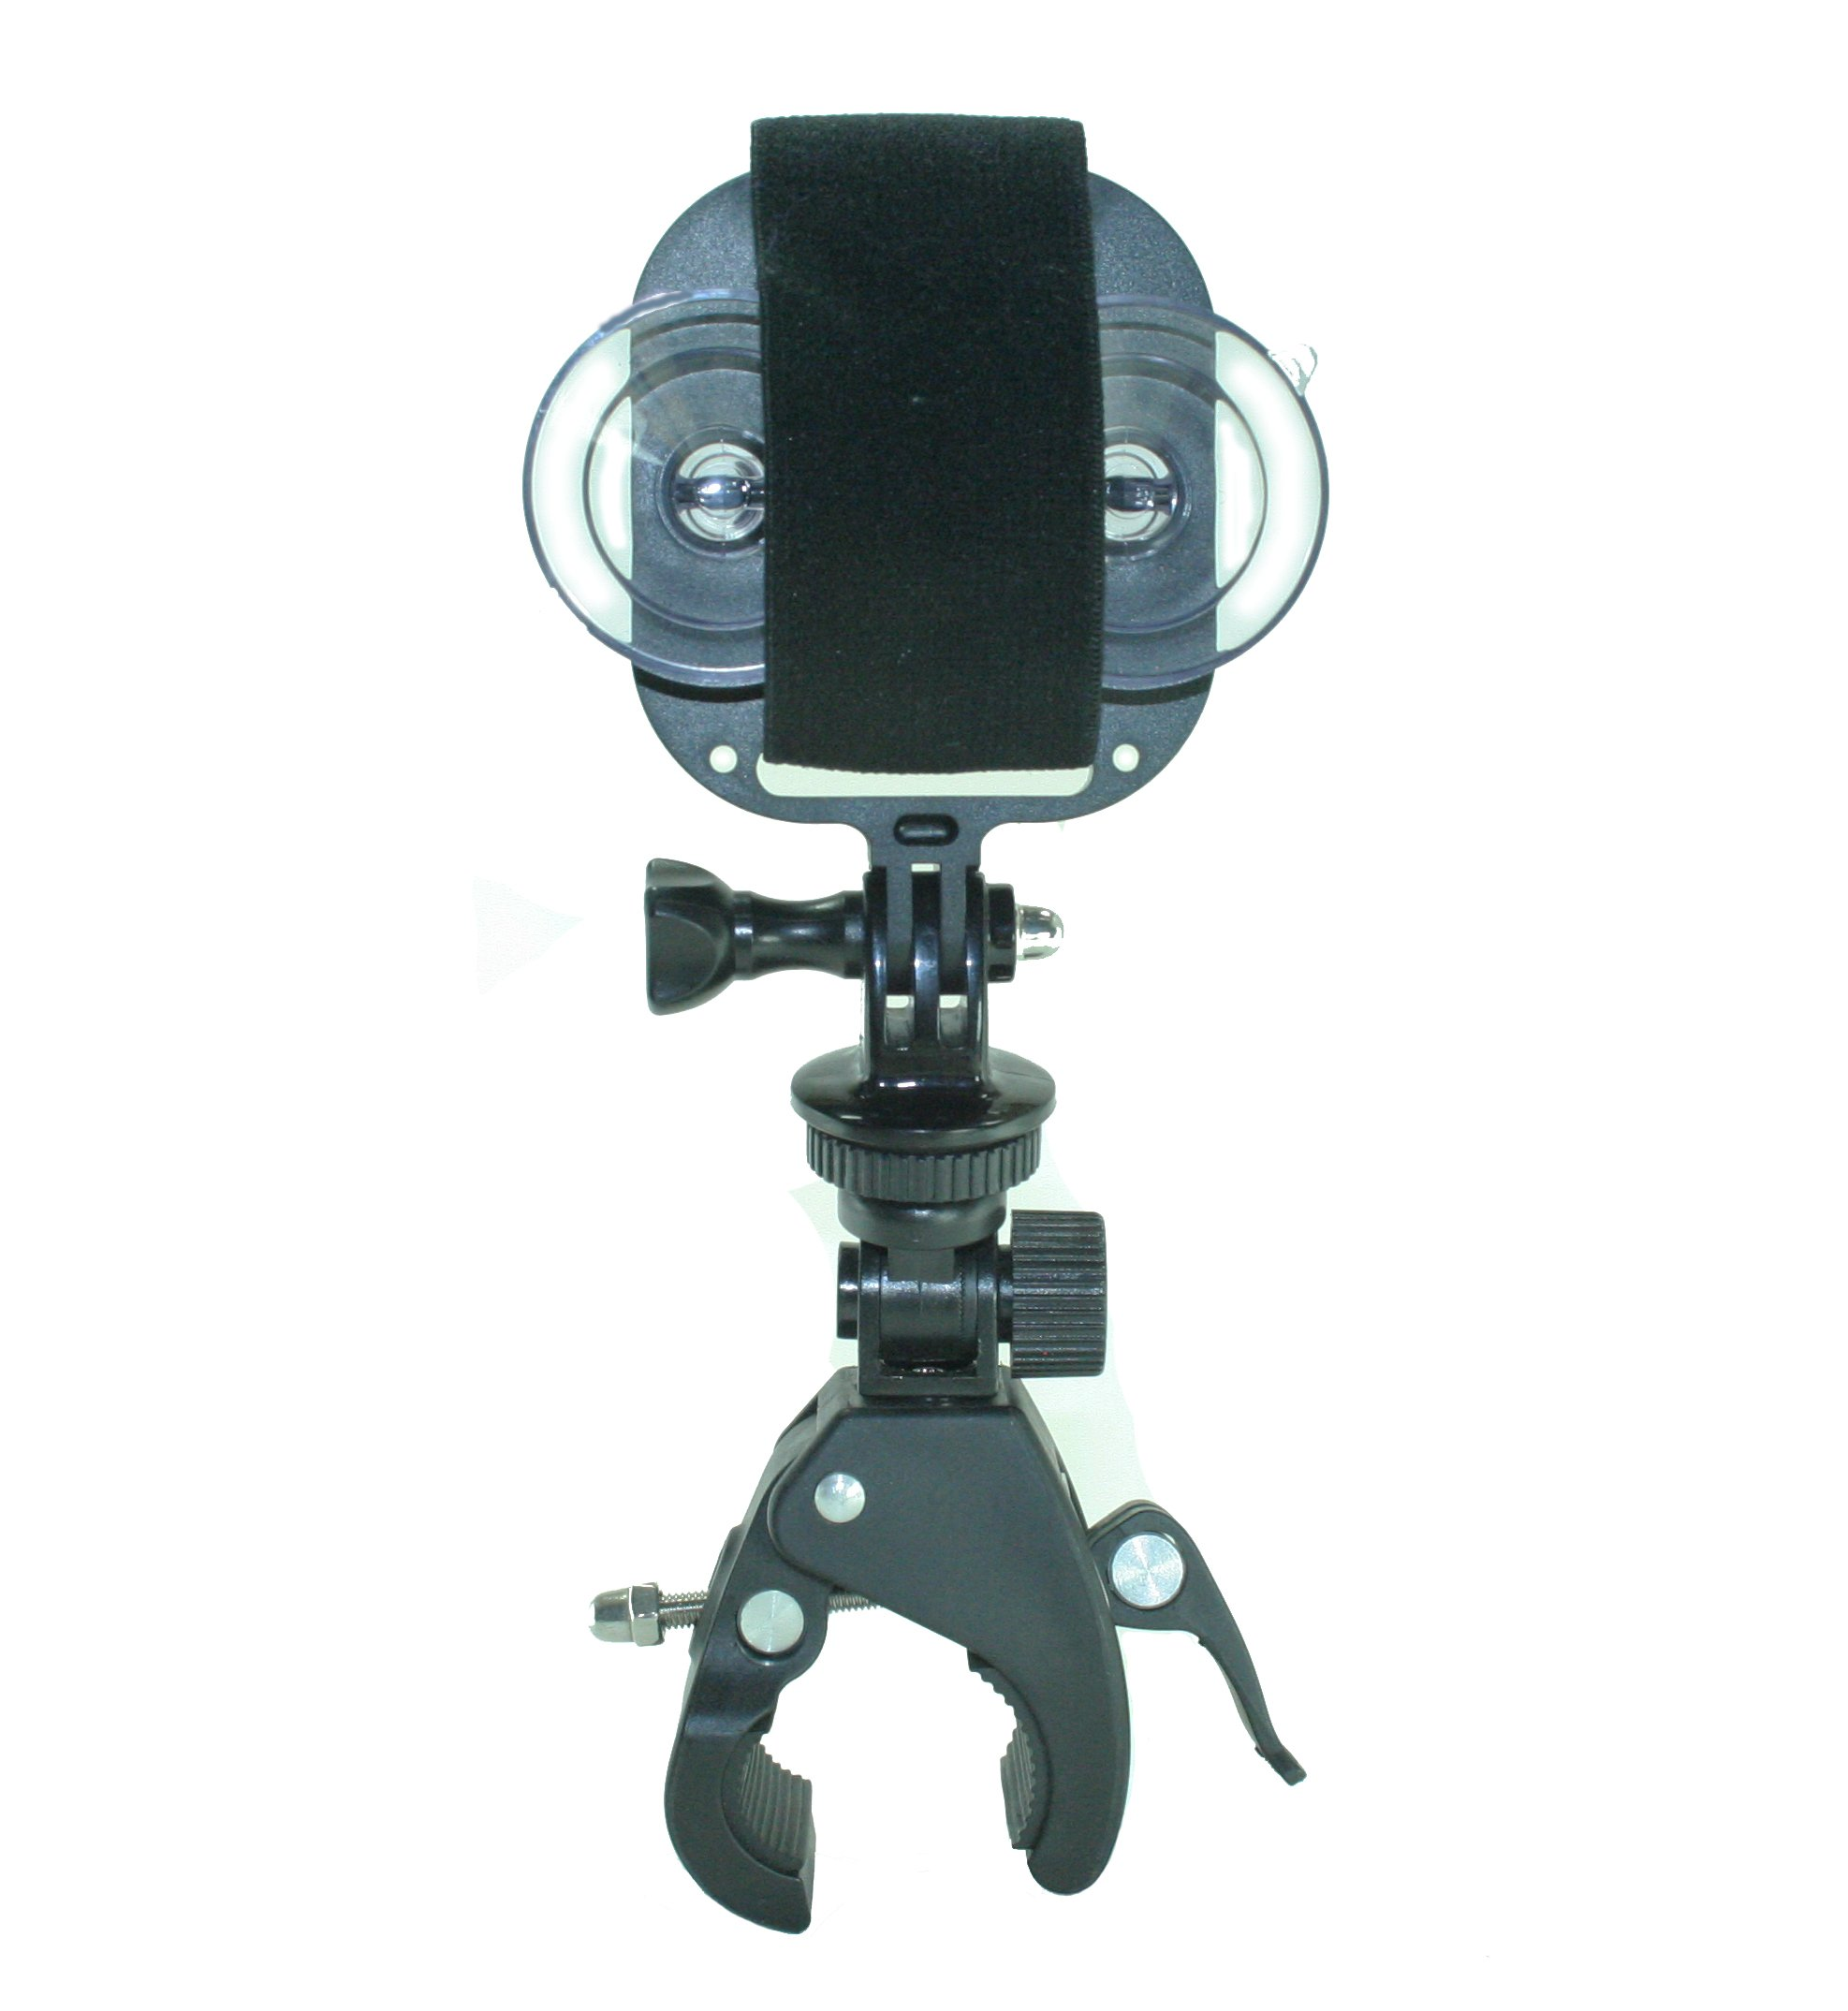 GoPro Style Handlebar Mount with Action Mount Adapter for Smartphone, Operable with Any Smartphone. Strongest Hold on the market. Use a Phone or GoPro. Easy to Use!